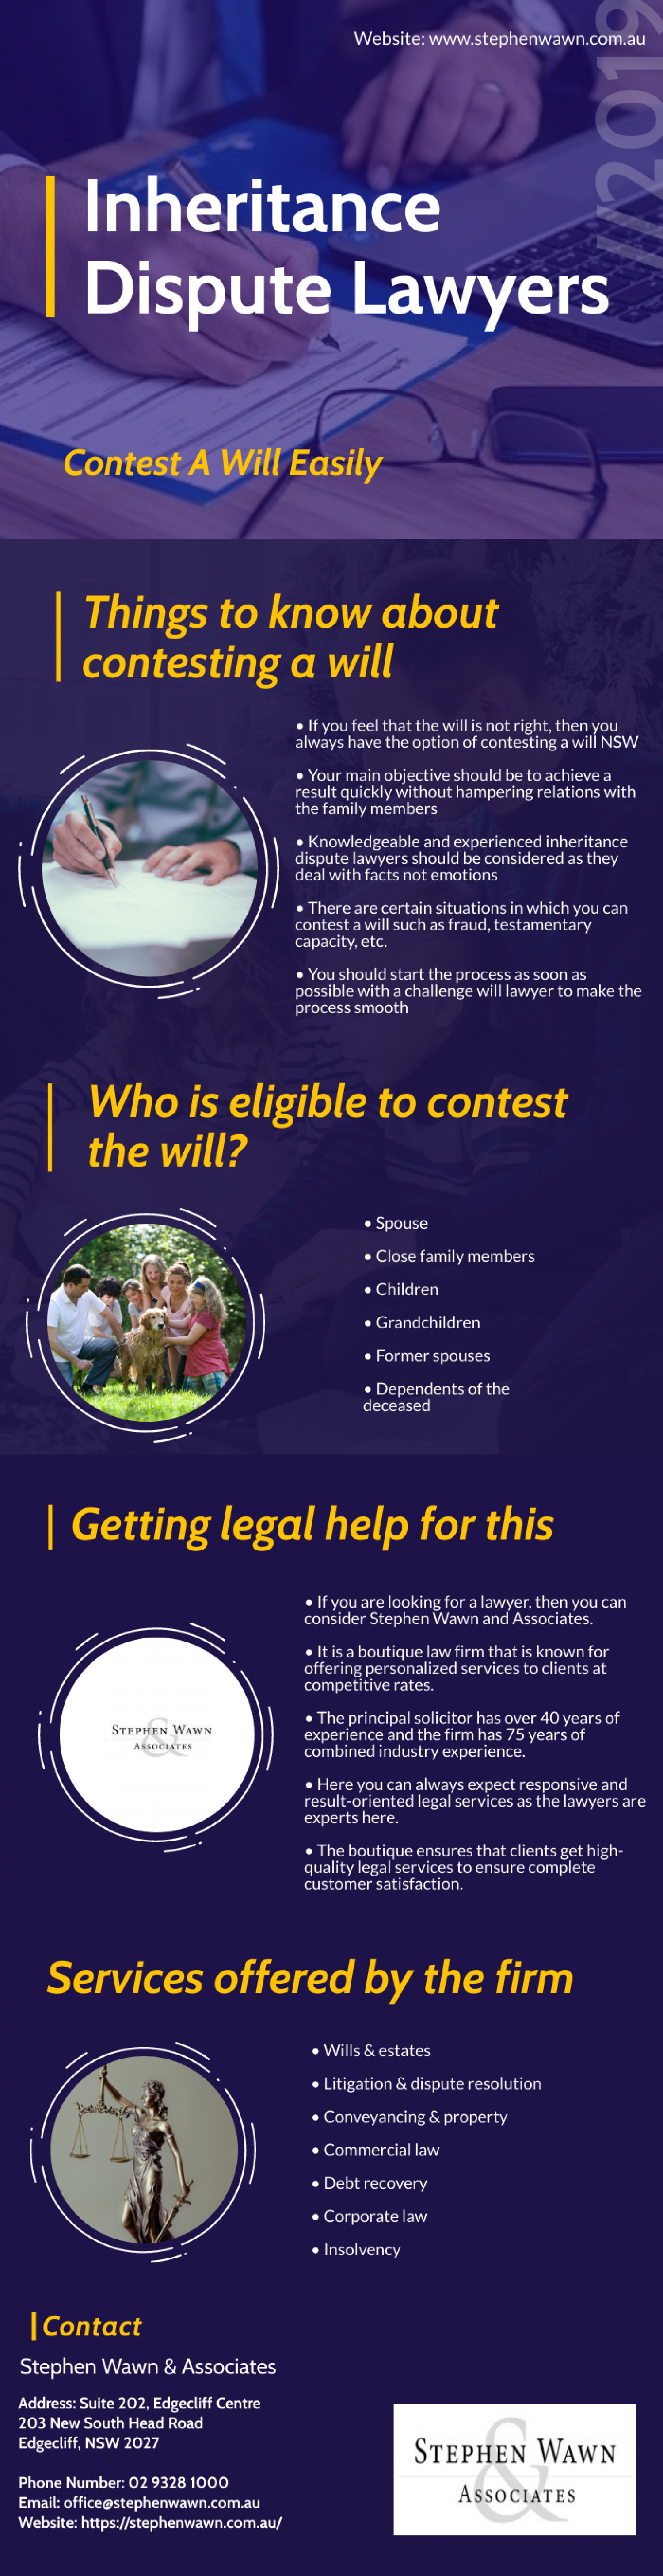 Hire an Inheritance Dispute Lawyer Infographic